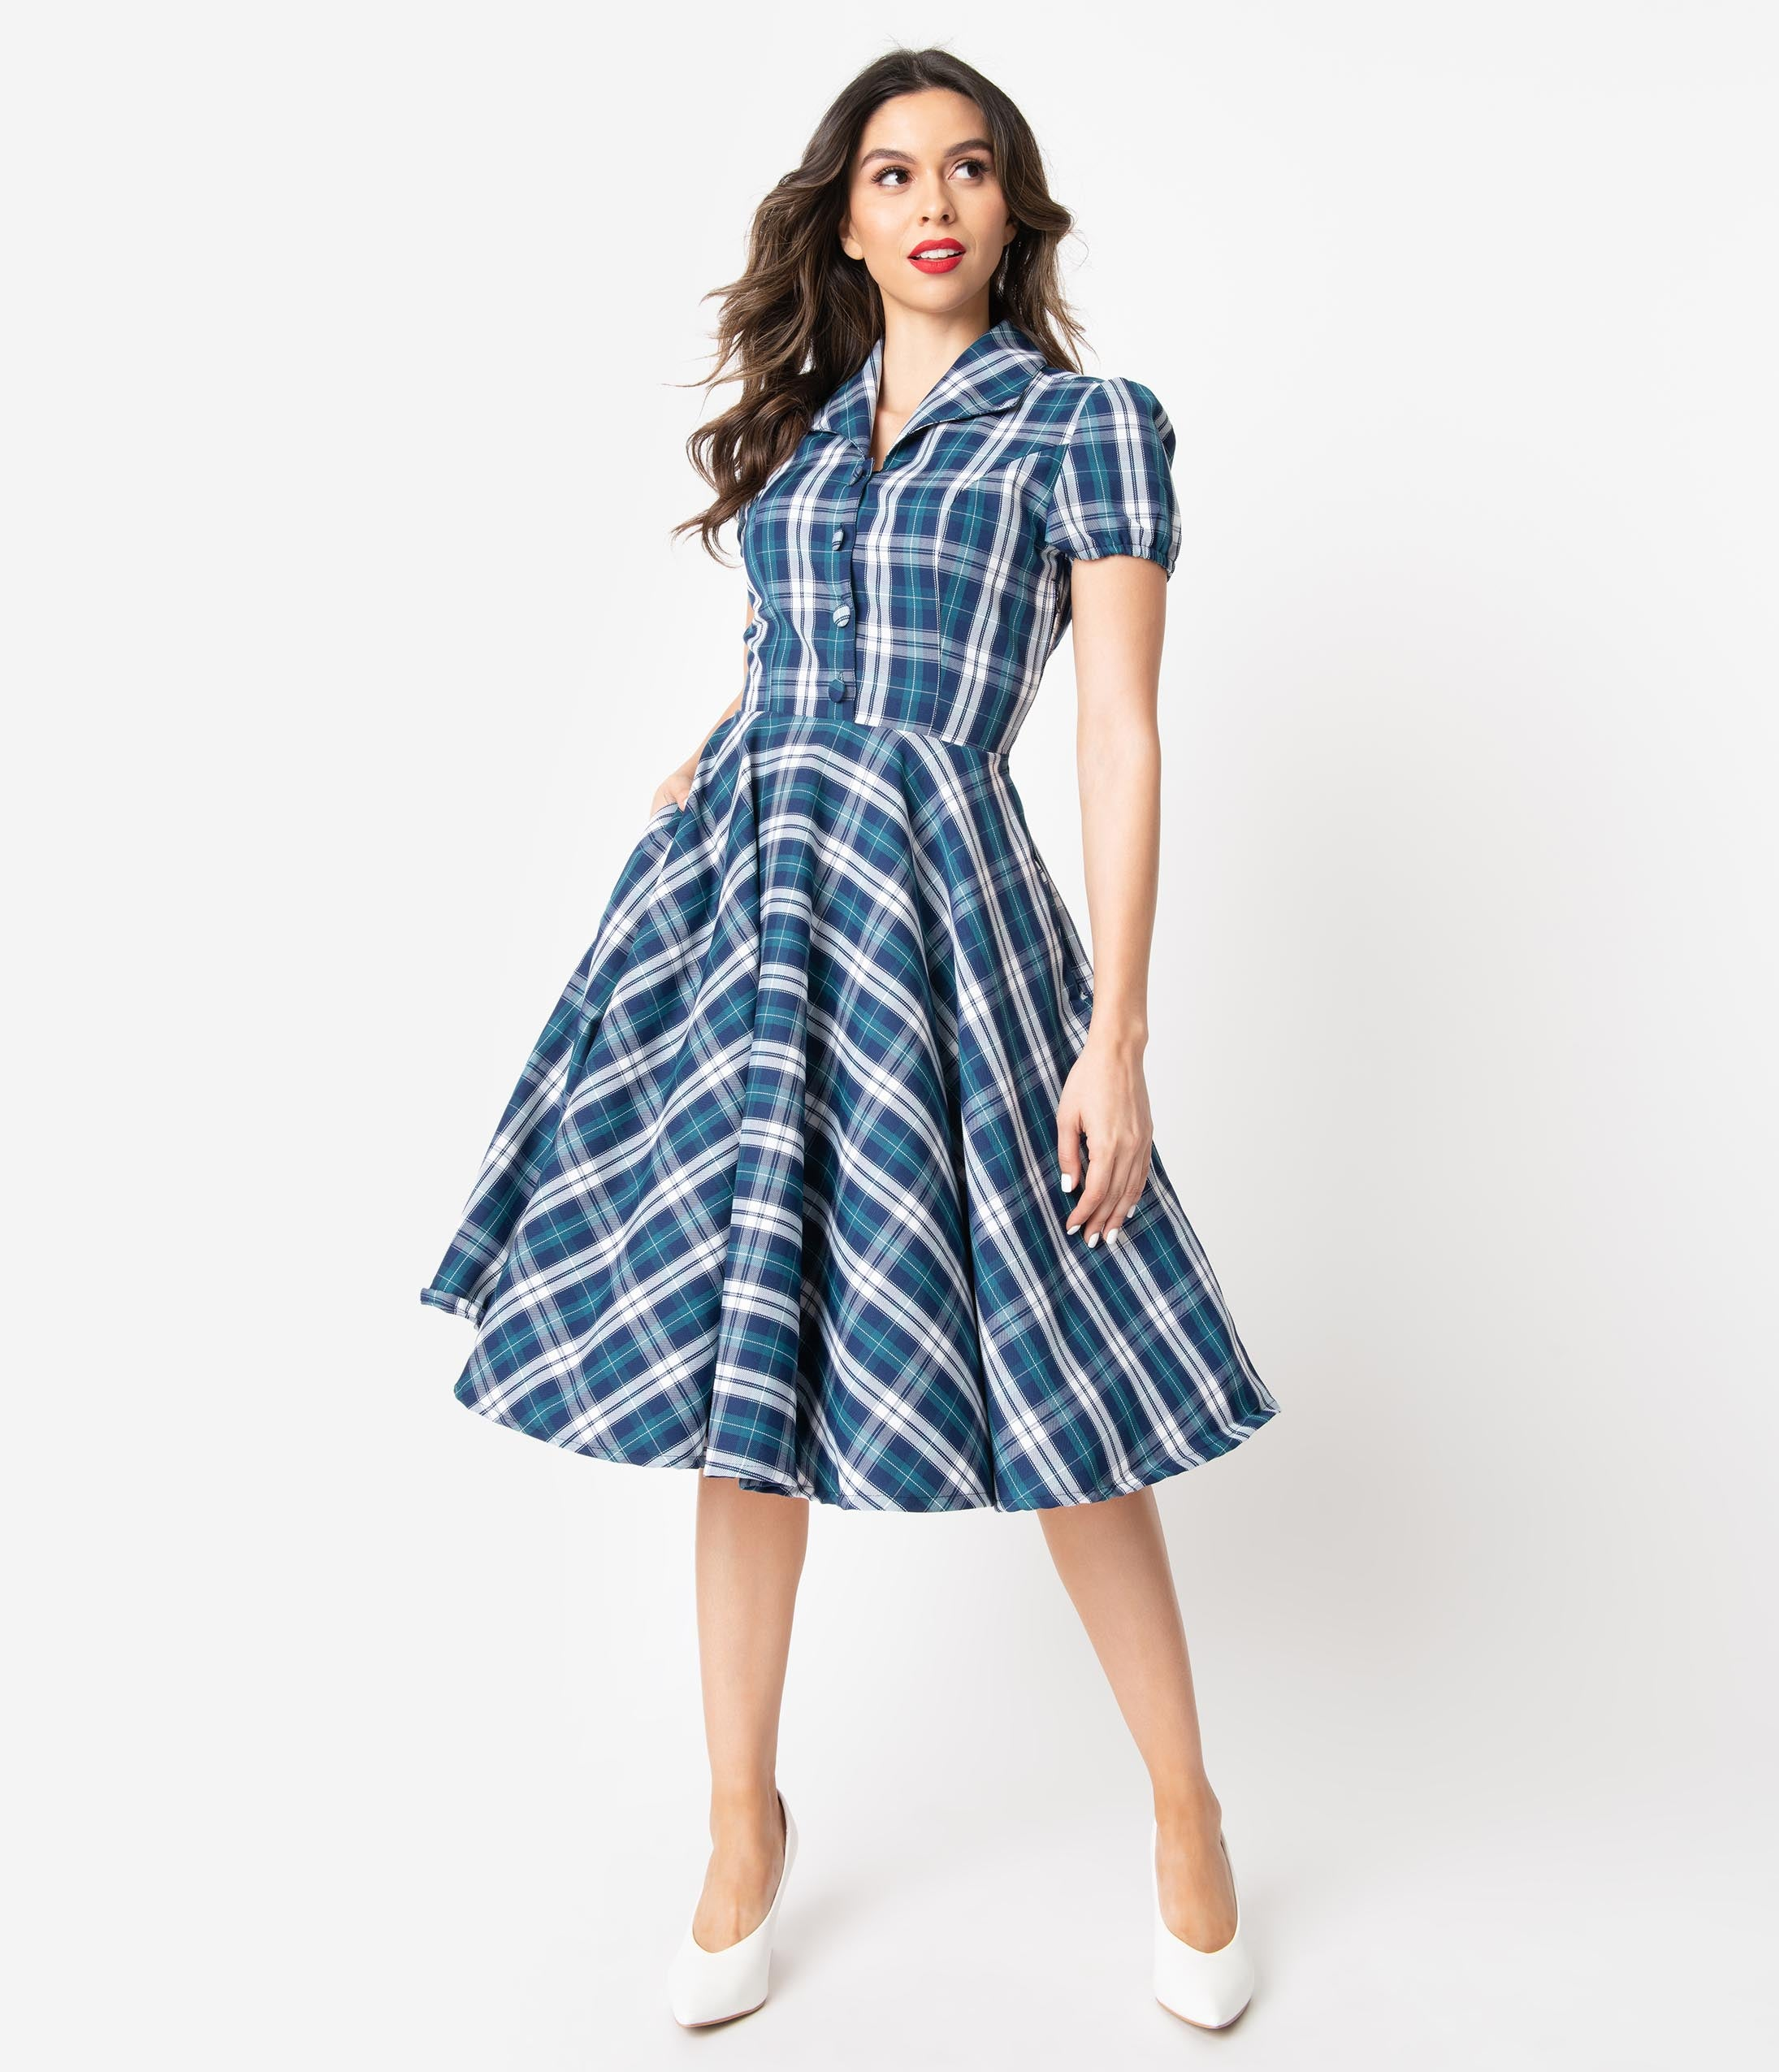 Fifties Dresses : 1950s Style Swing to Wiggle Dresses 1950S Style Navy  White Plaid Mona Swing Dress $78.00 AT vintagedancer.com